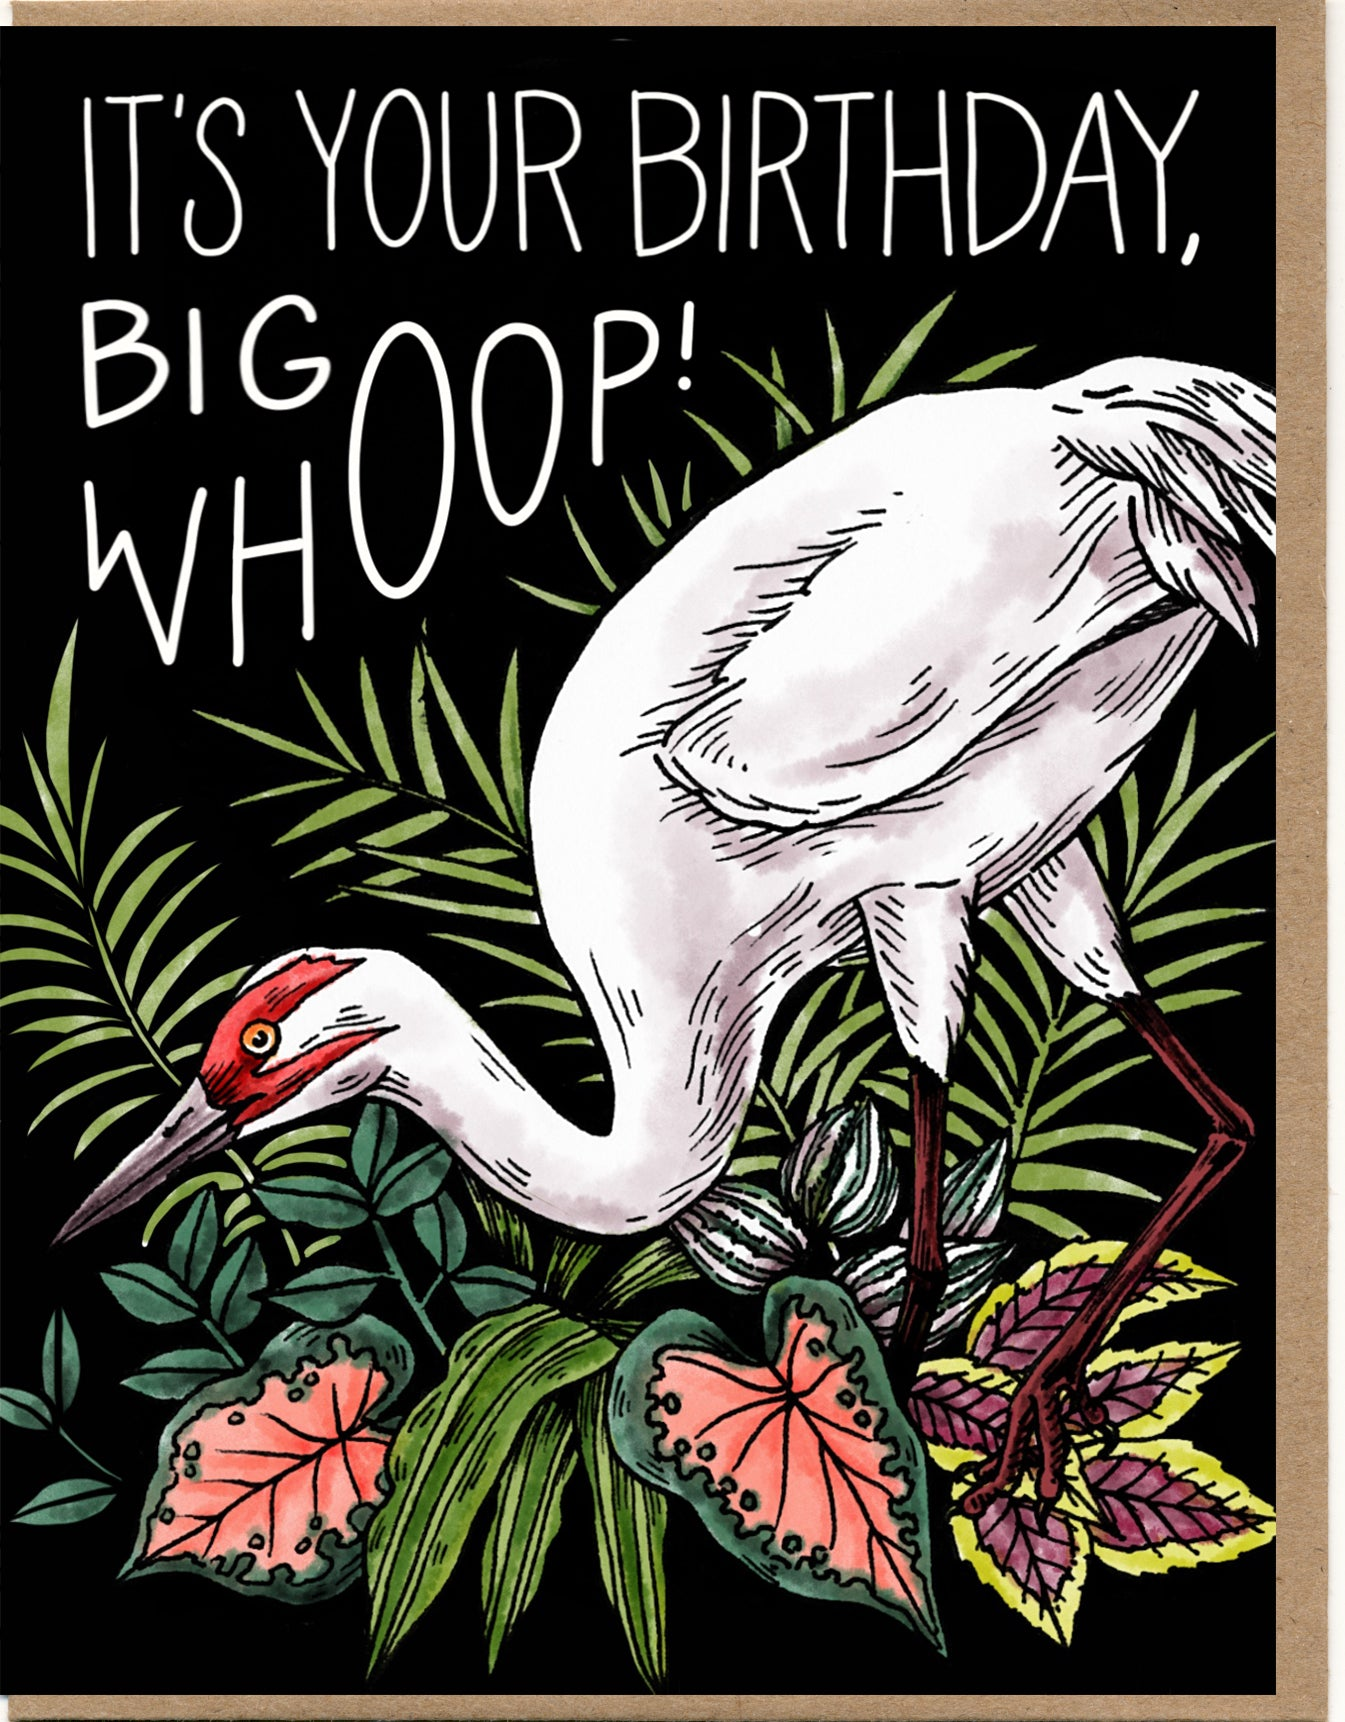 It's Your Birthday, Big Whoop! Card